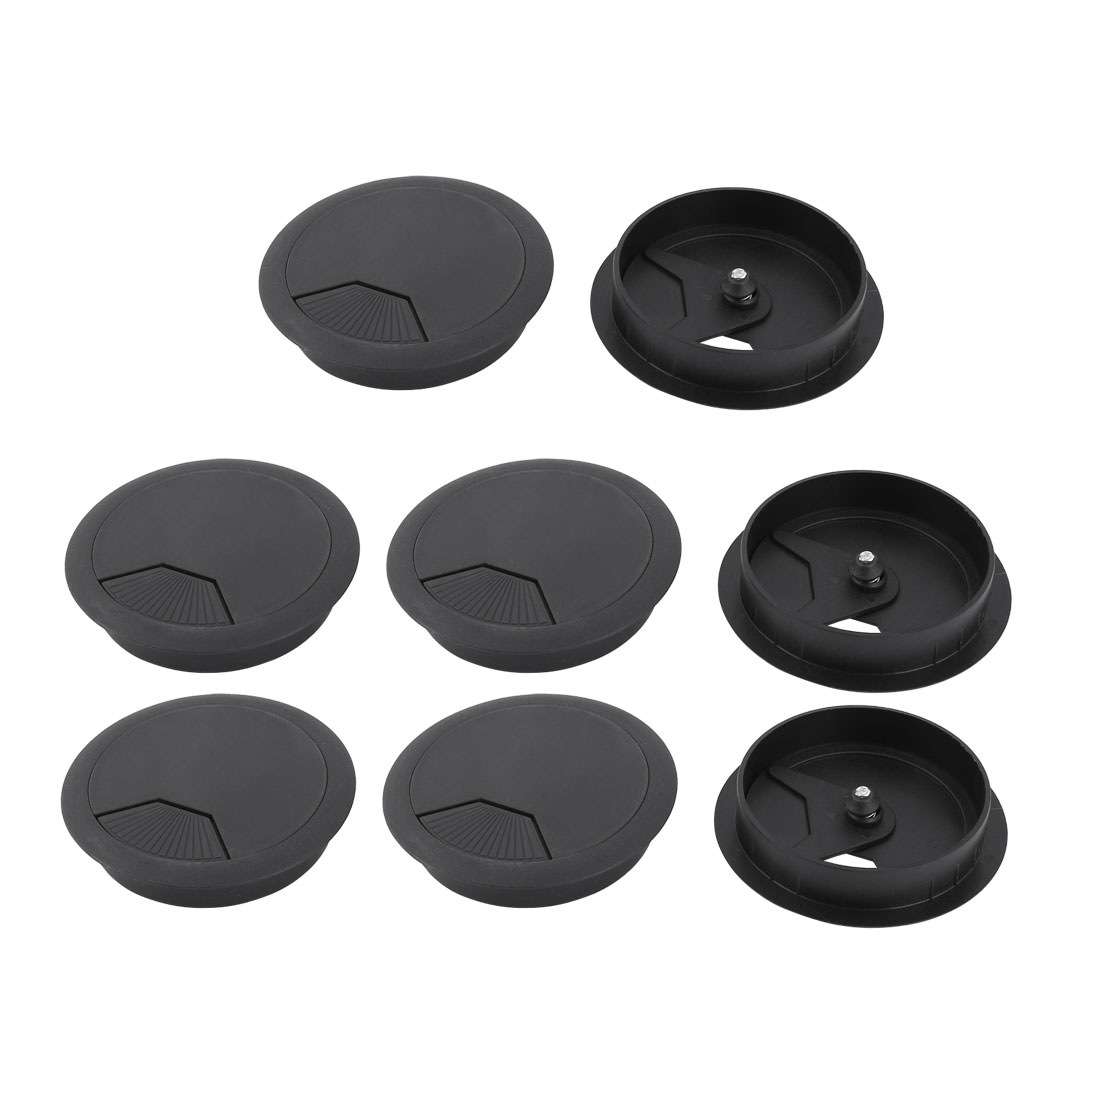 Household Office Plastic Desk Computer Adjustable Wire Cable Hole Cover Black 8 Pcs